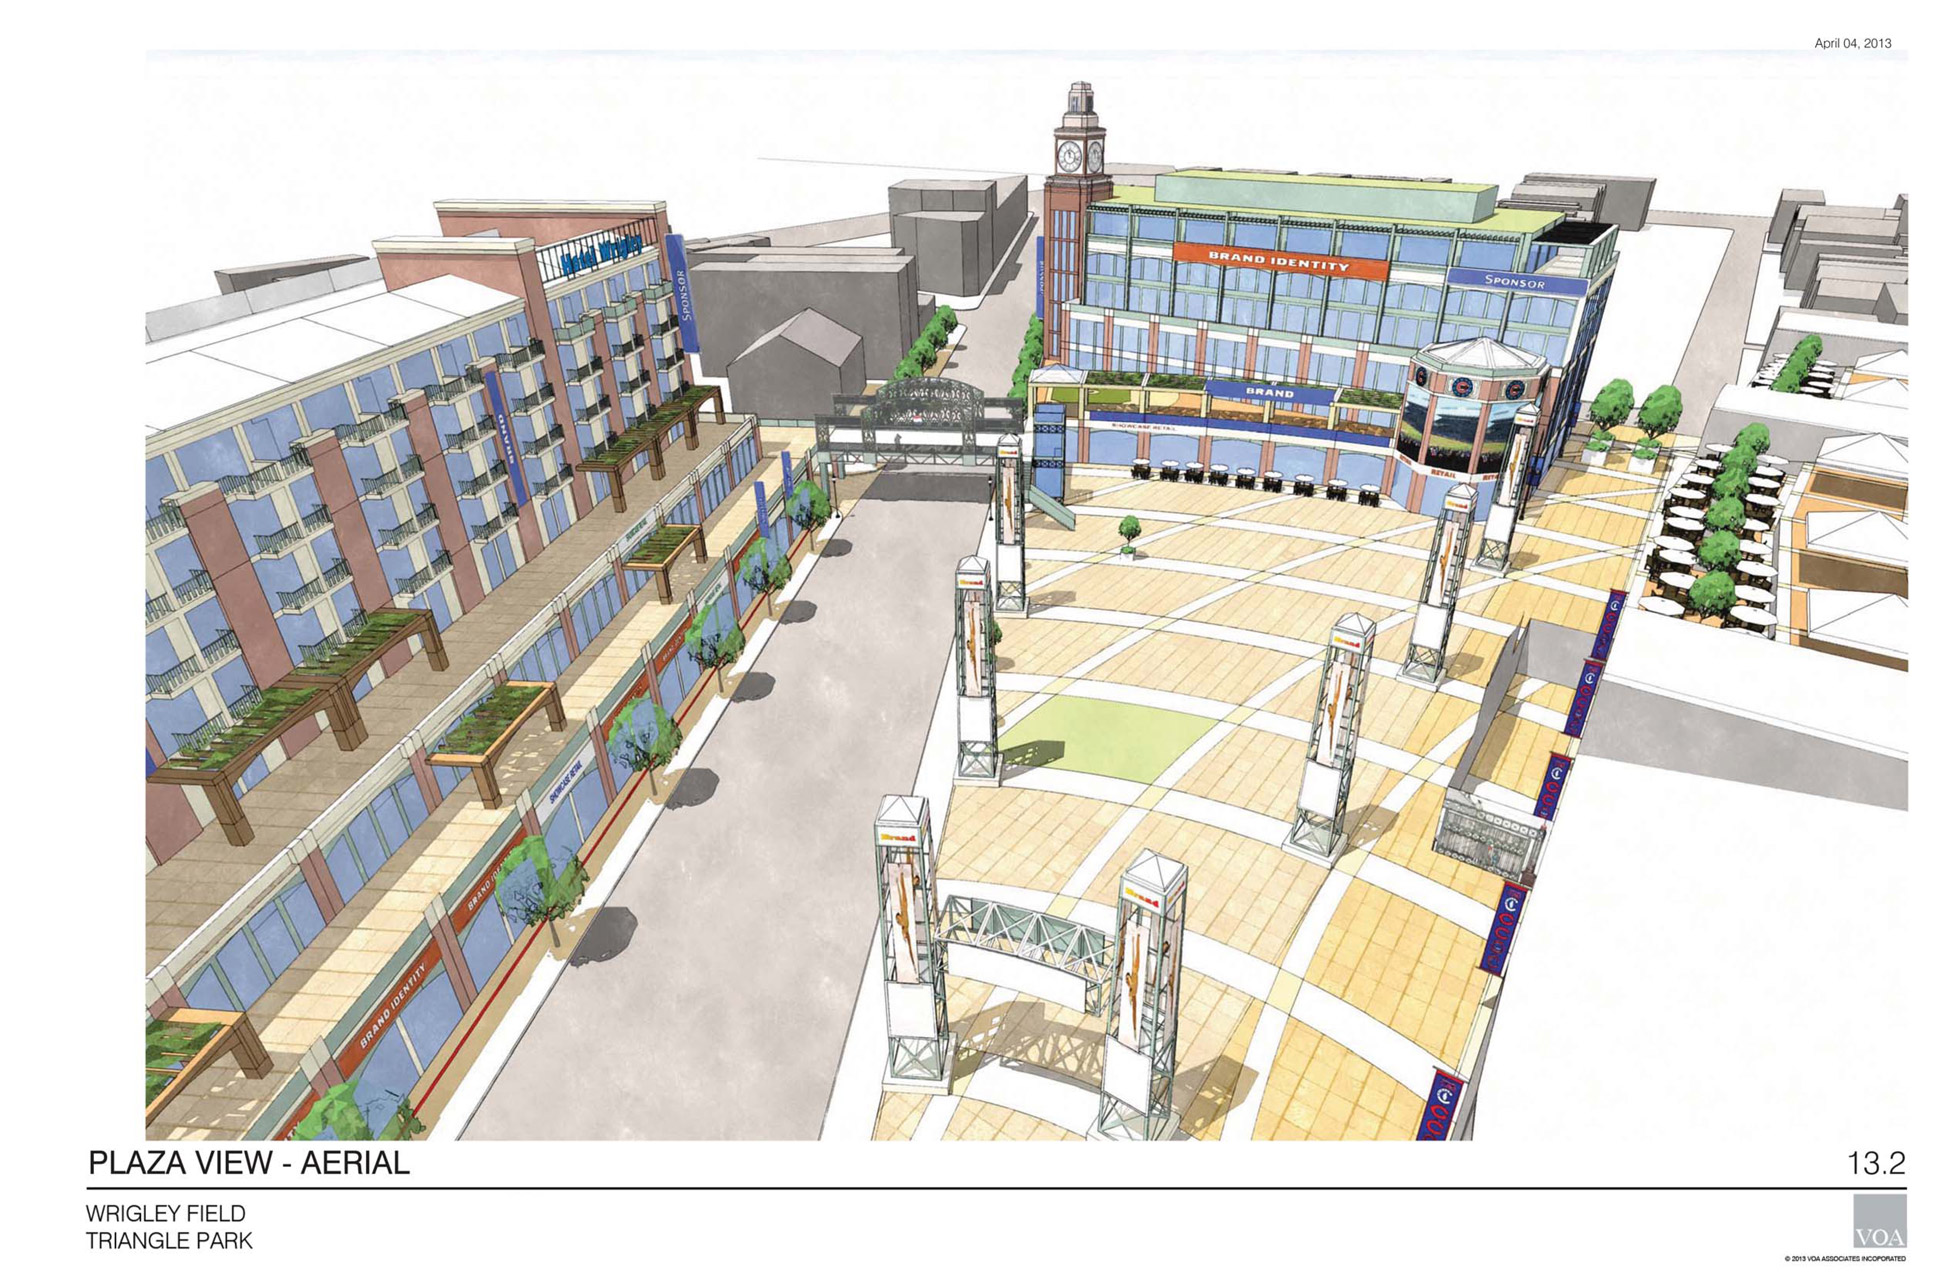 Wrigley Renderings - Plaza